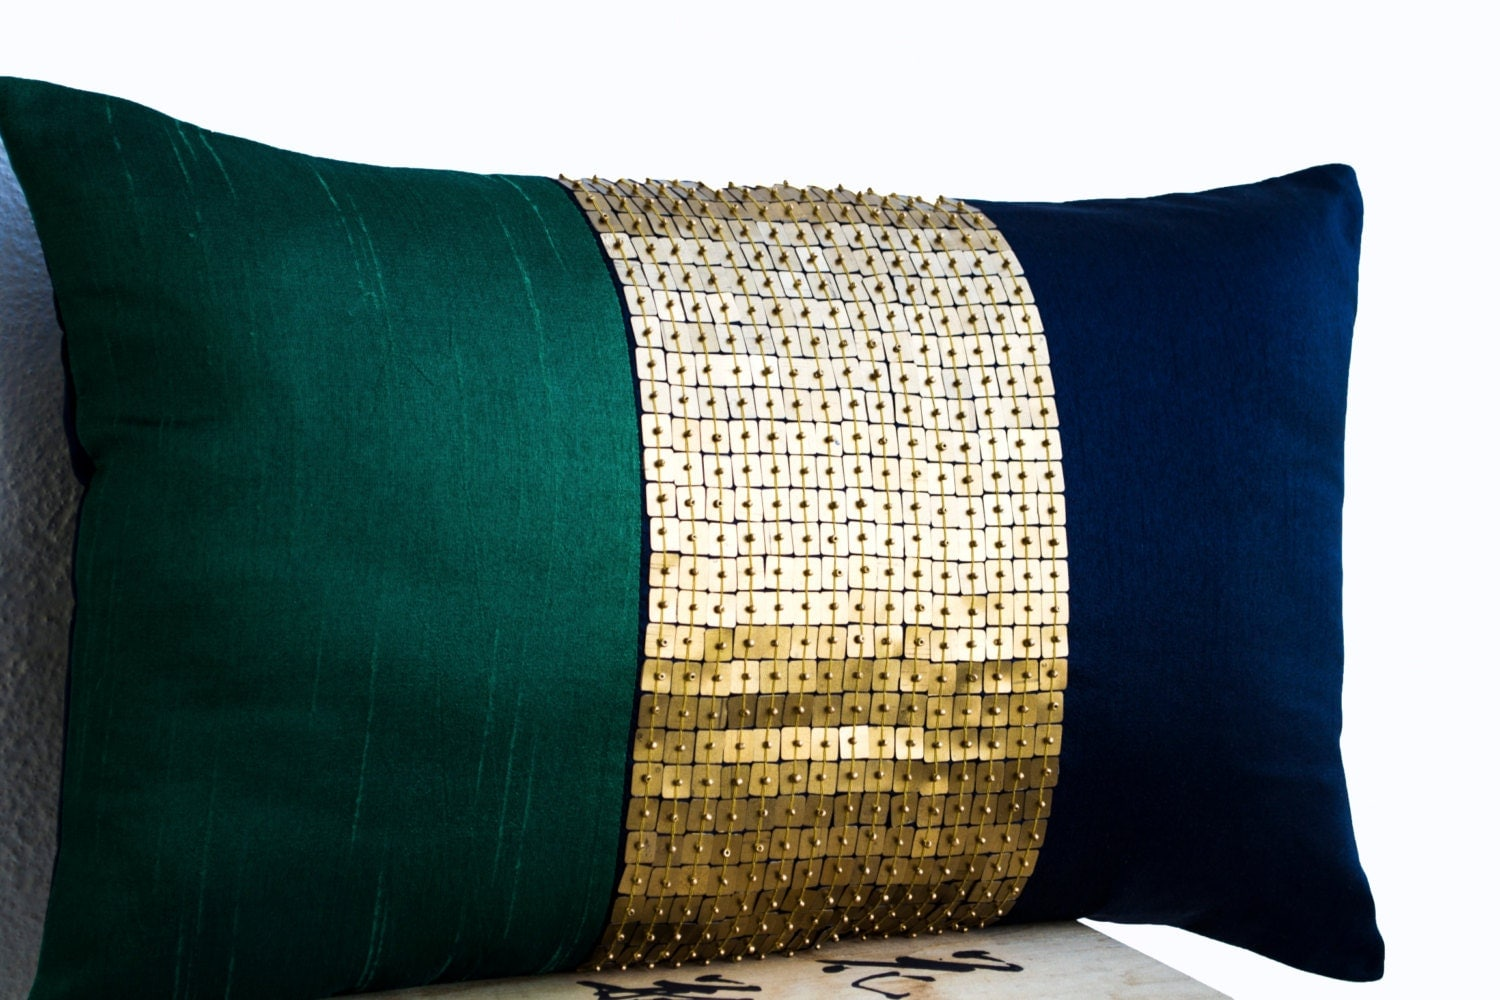 Blue Beaded Throw Pillow : Beaded Throw Pillow Cover Emerald green navy blue gold color